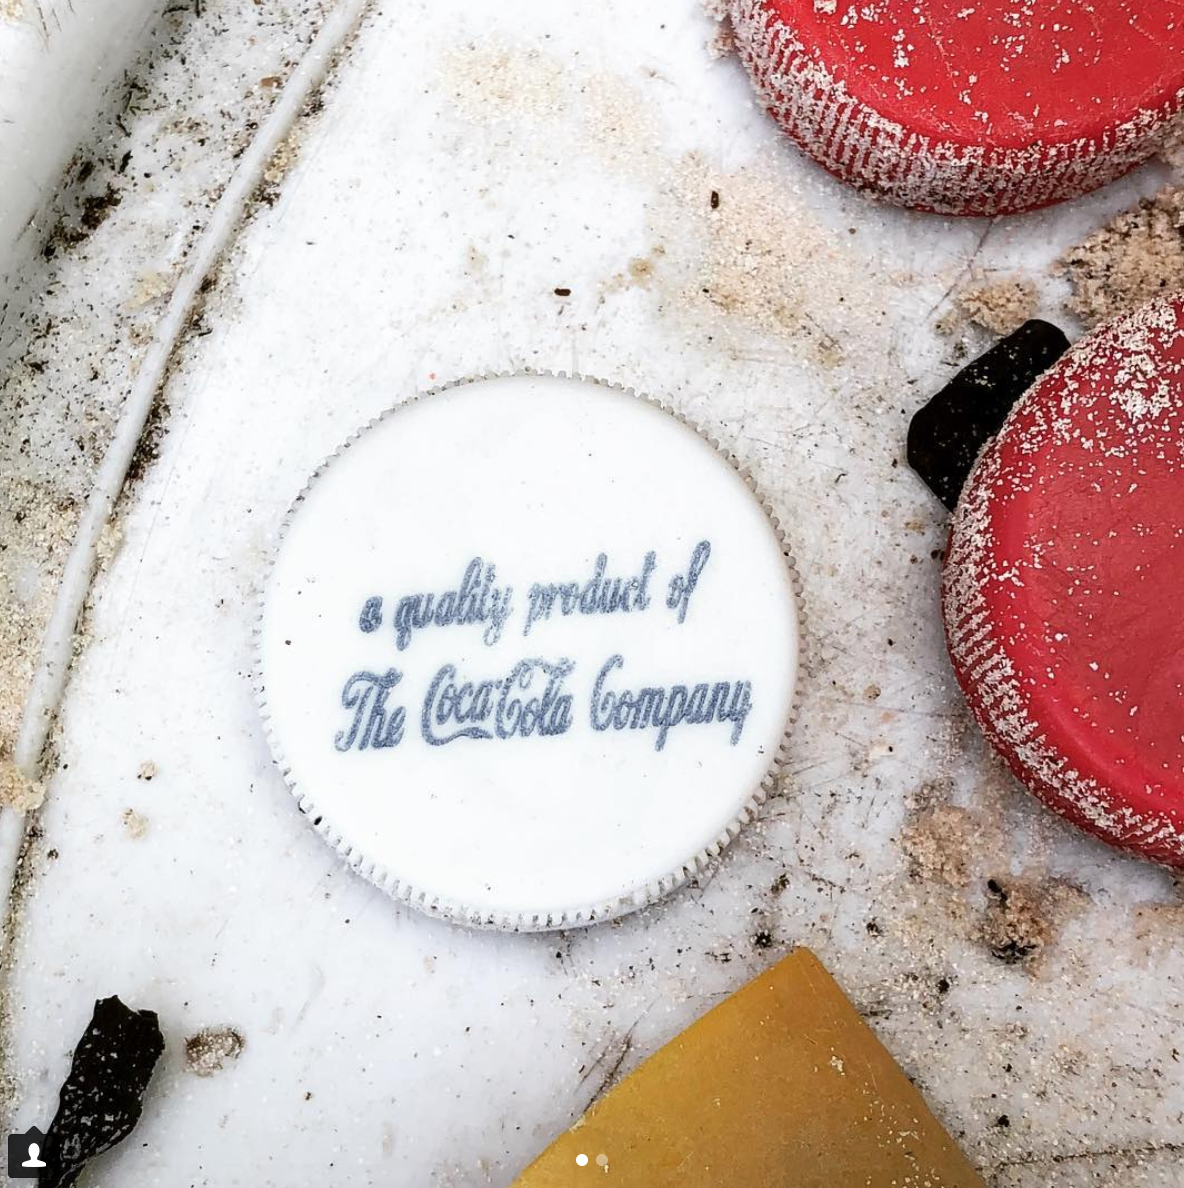 Coca-cola bottle cap found during the beach clean up and brand audit. Photo by Dianna Cohen.